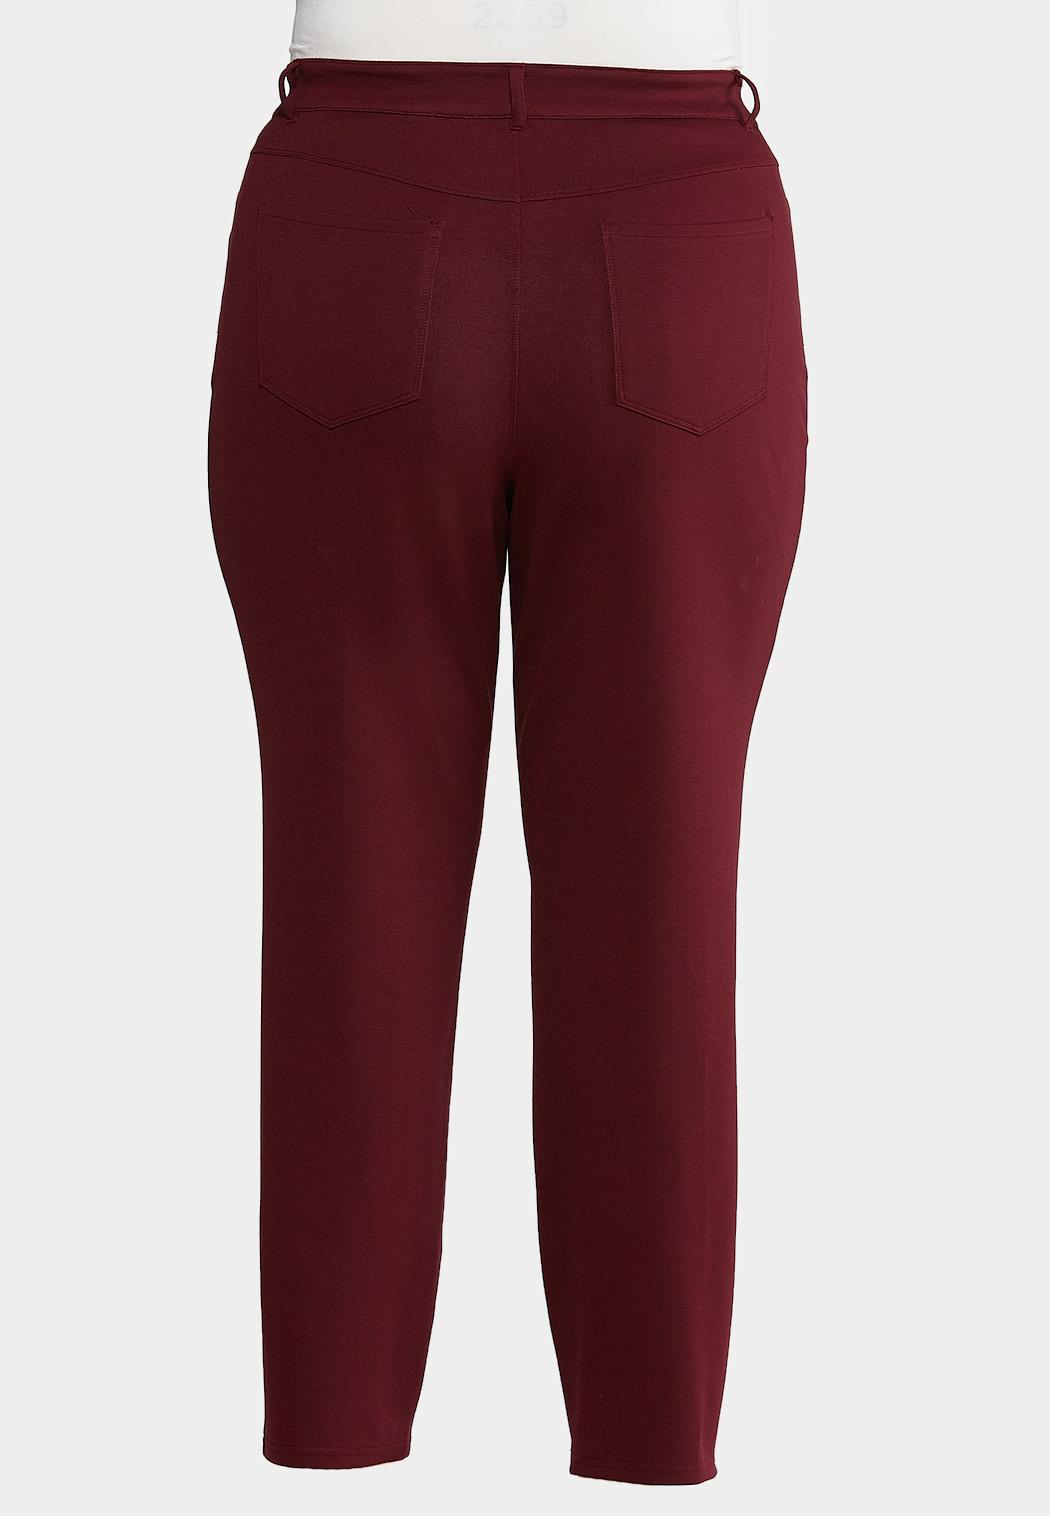 Plus Size Skinny Leg Ponte Pants (Item #43918132)